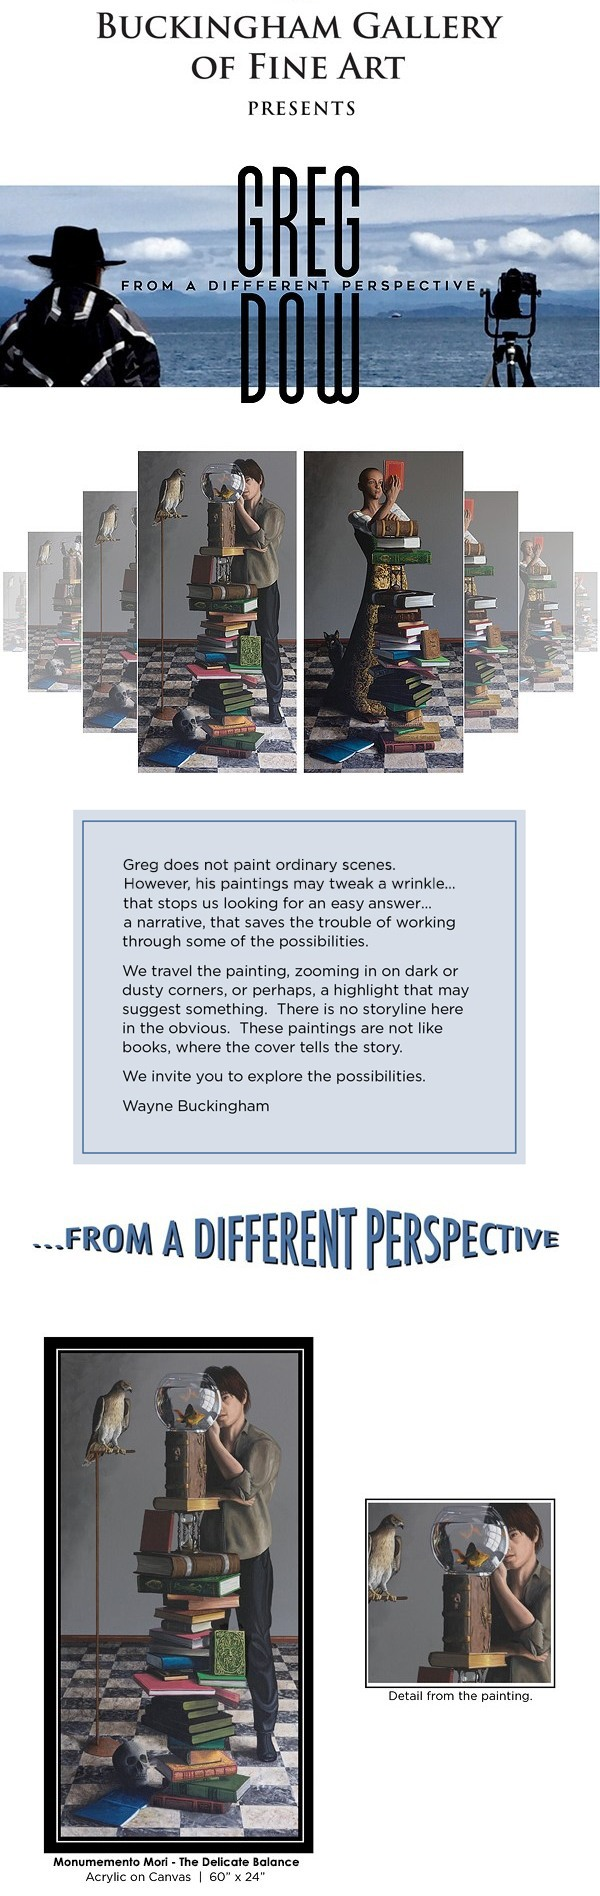 Greg Dow - From a Different Perspective